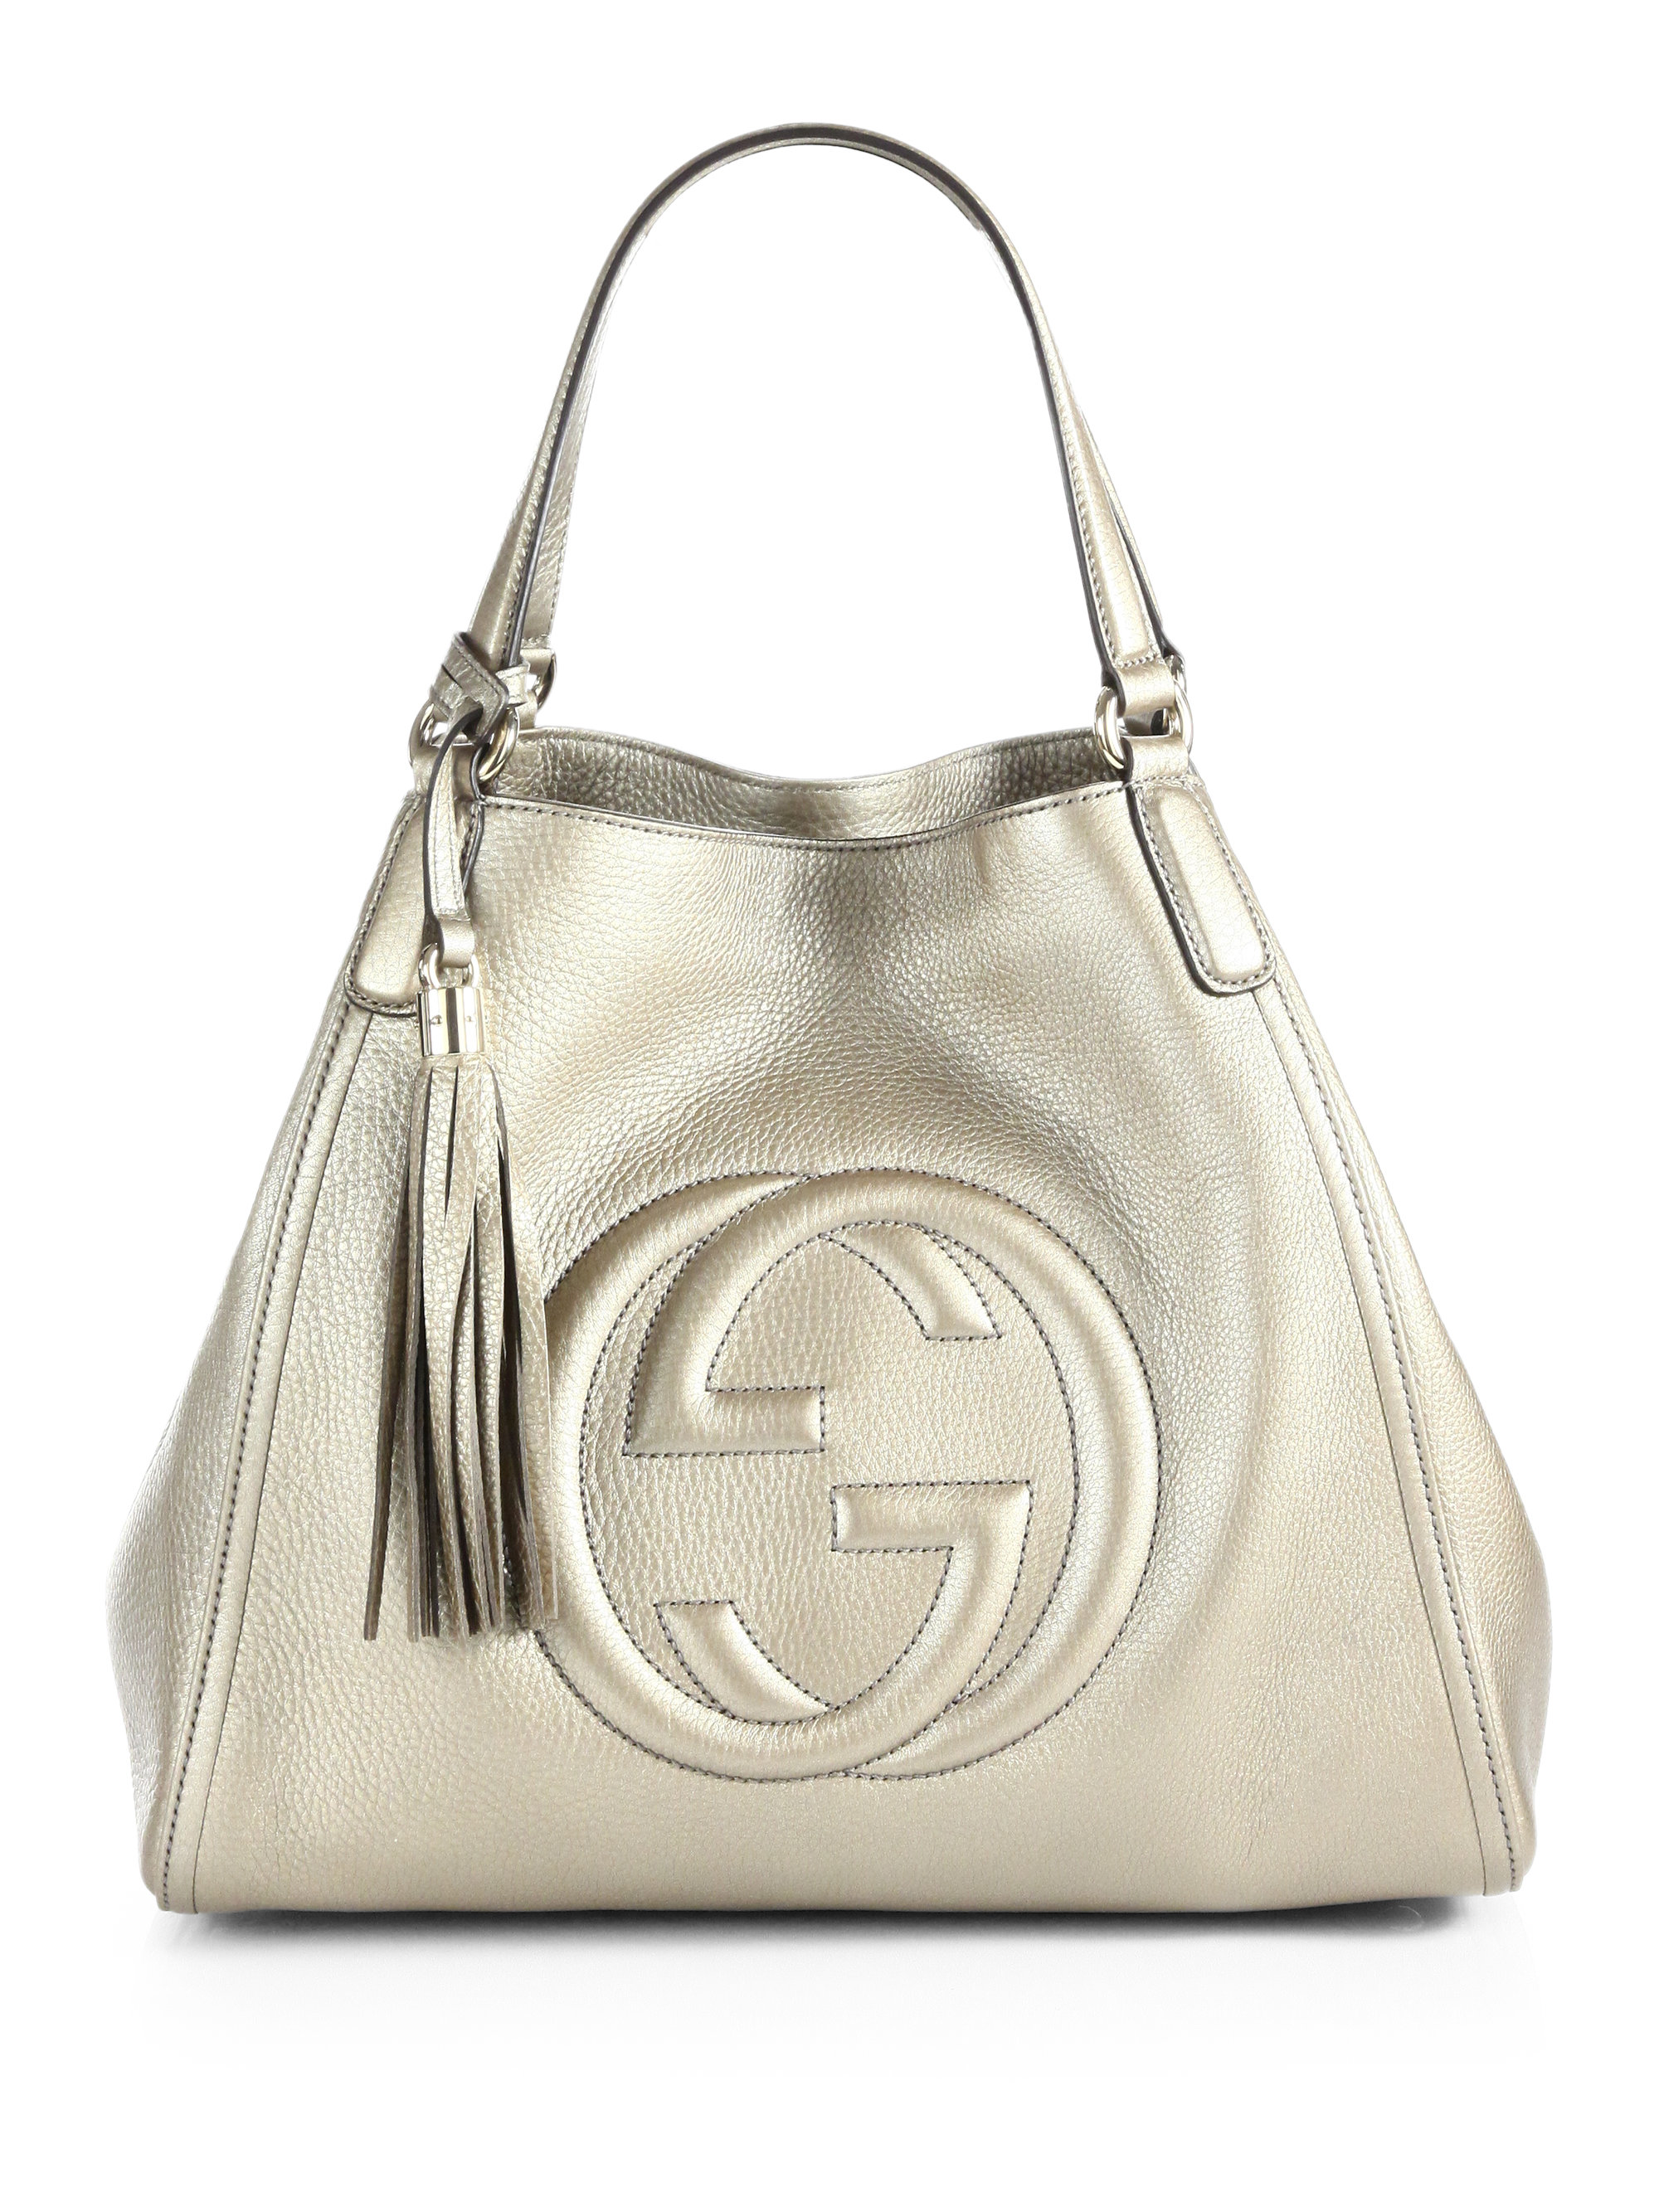 a039ba40a Gucci Soho Metallic Leather Shoulder Bag in White - Lyst